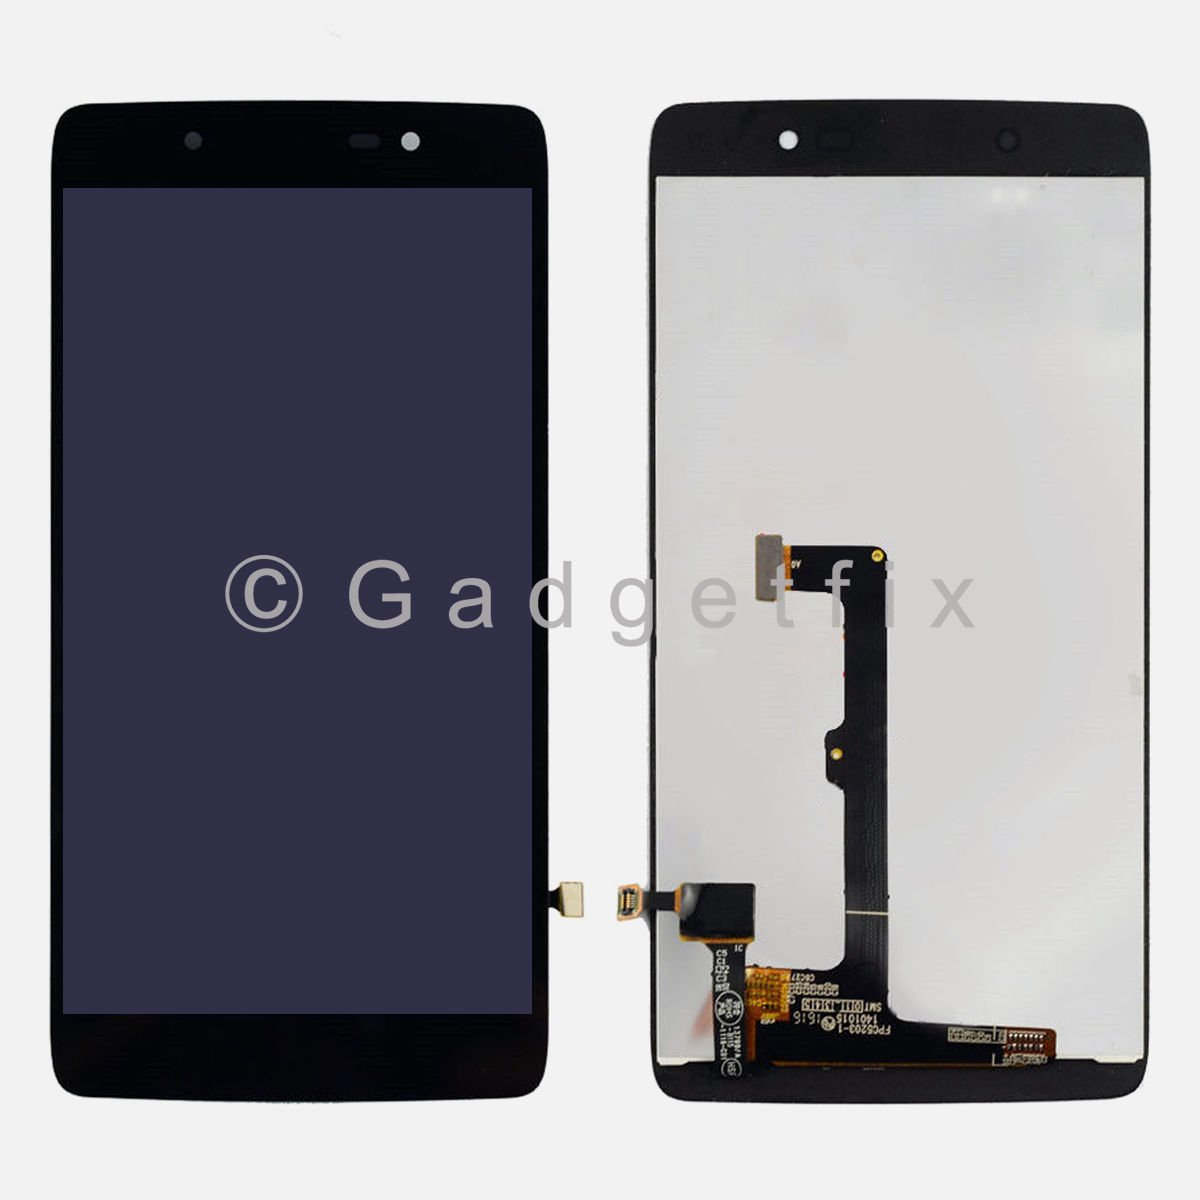 LCD Display Touch Screen Digitizer Assembly Replacement For Blackberry DTEK50